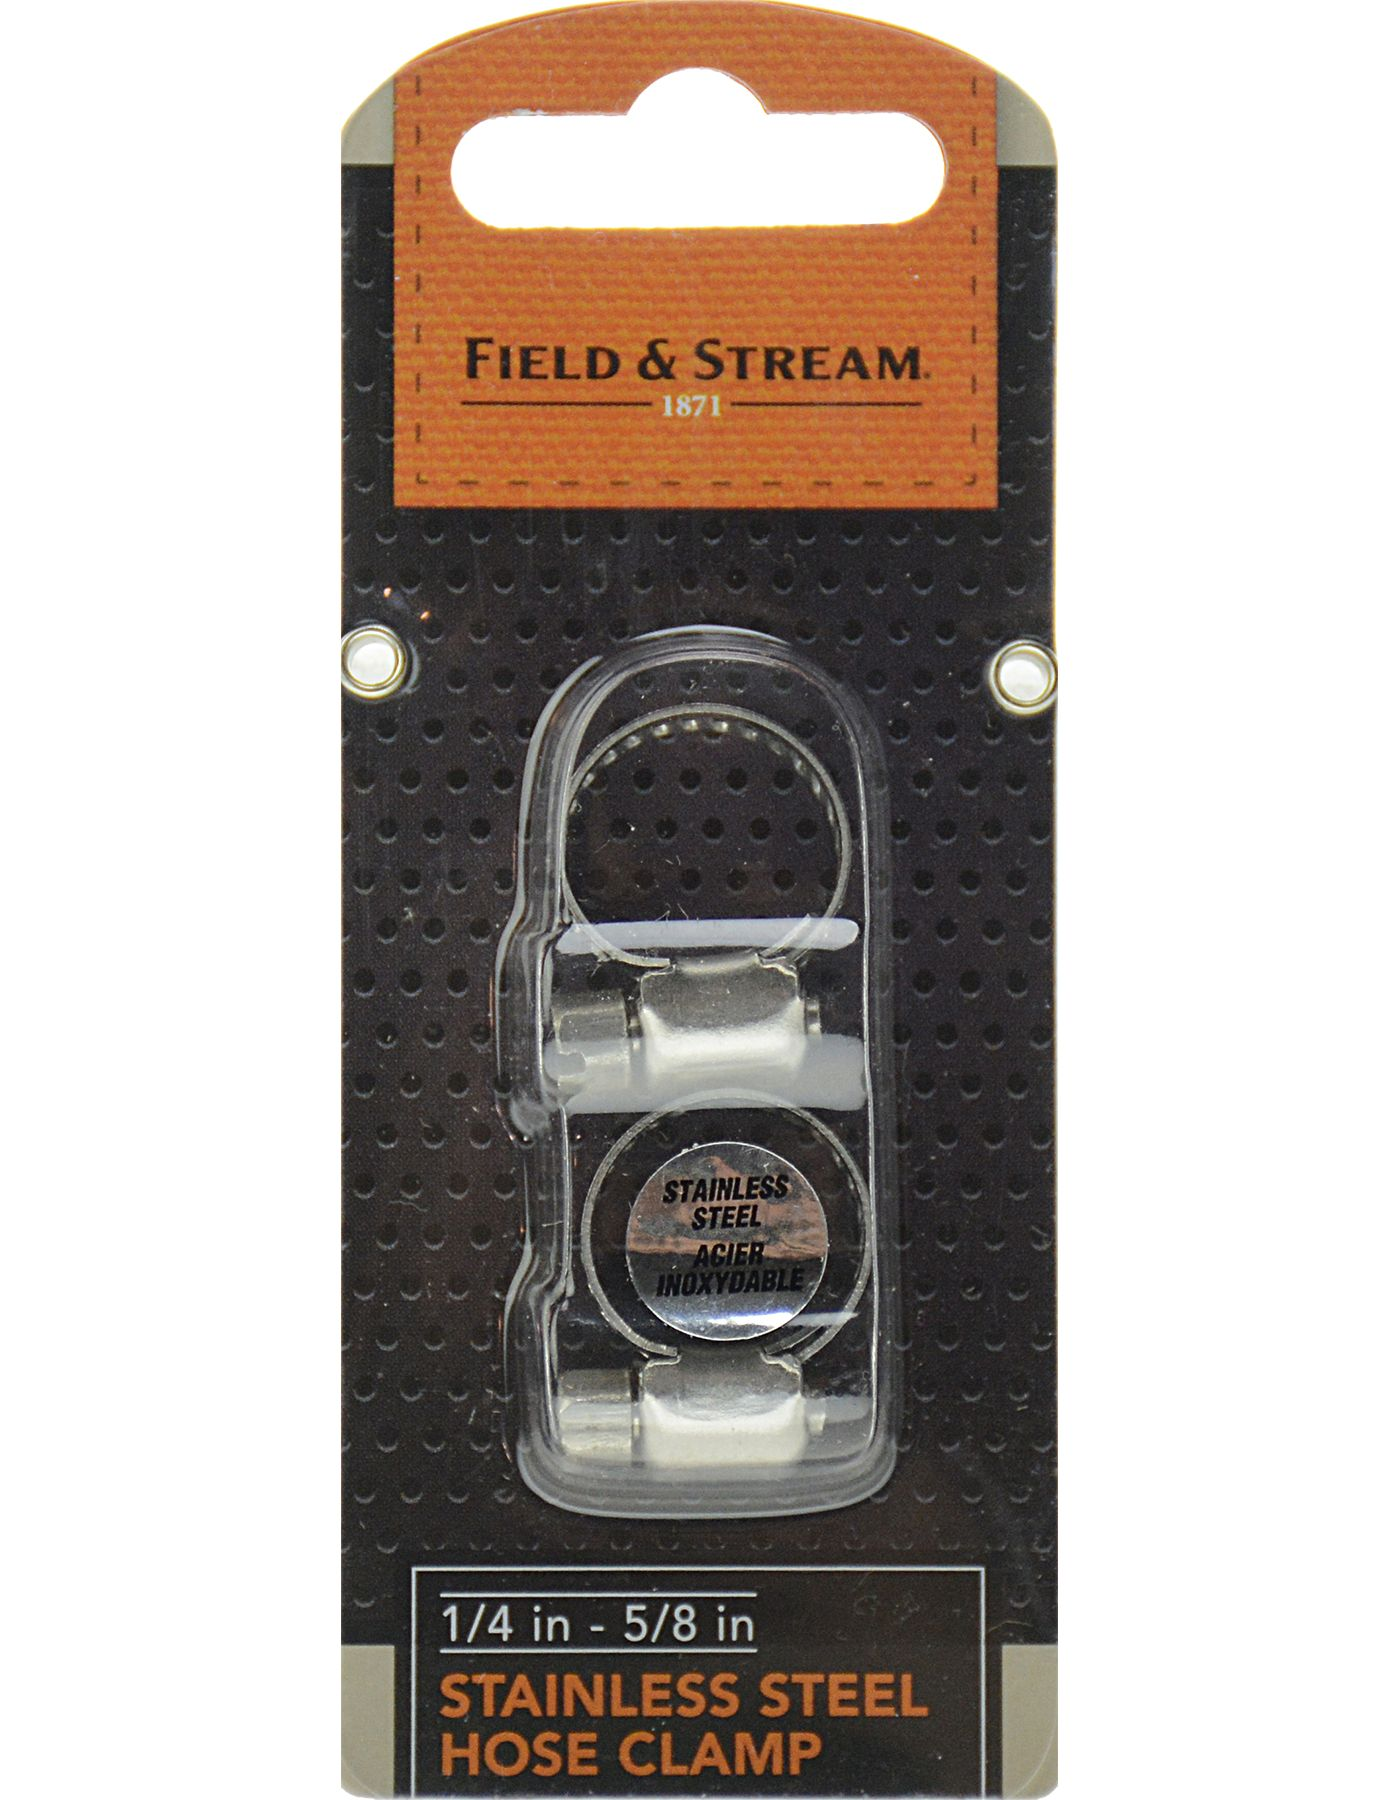 Field & Stream Stainless Steel Hose Clamp